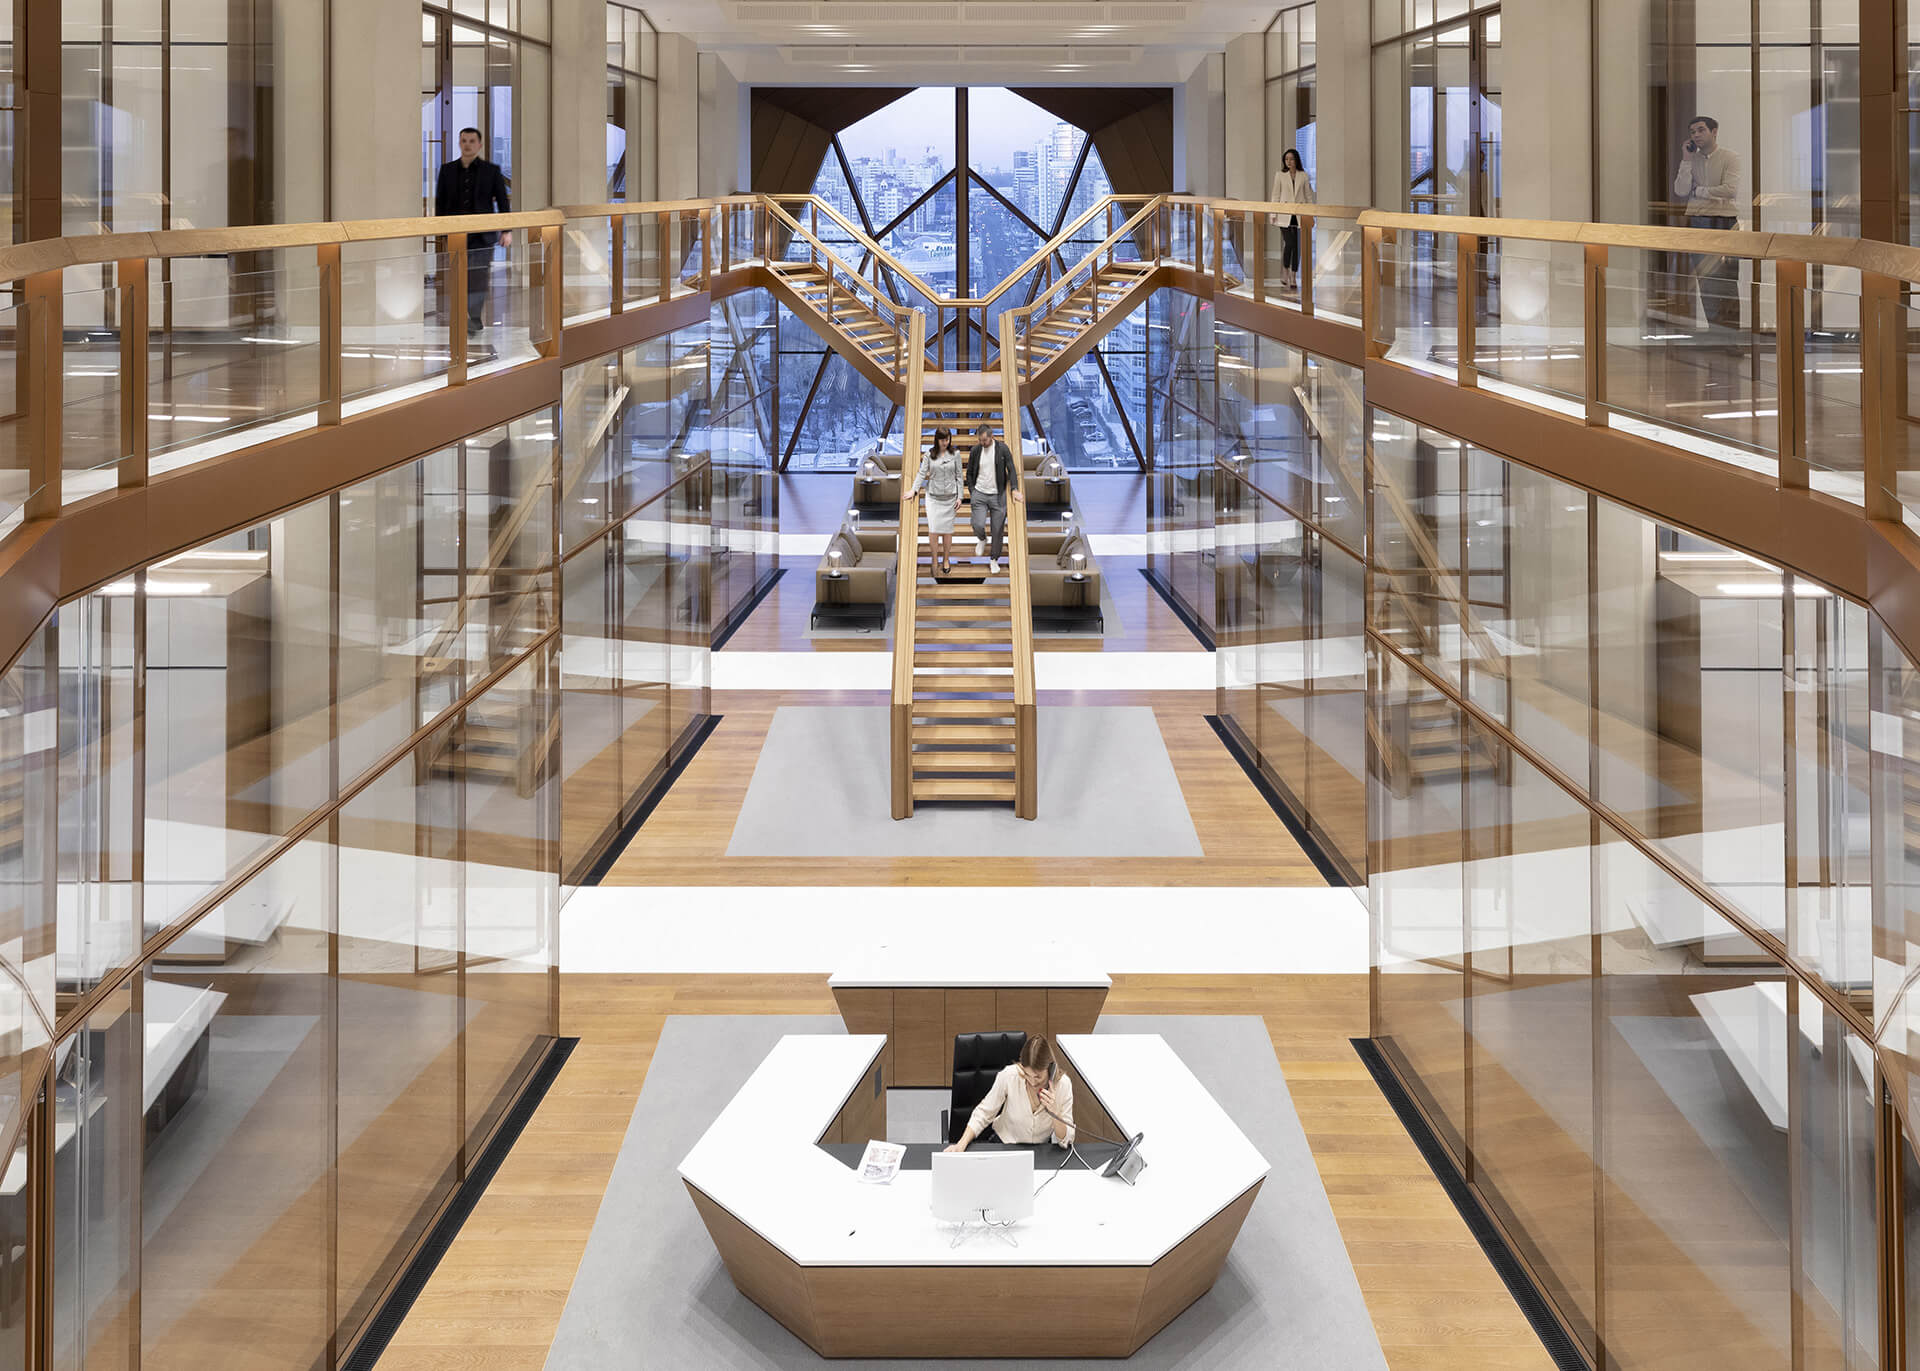 Double height hallway | RCC Headquarters by Foster + Partners | STIRworld